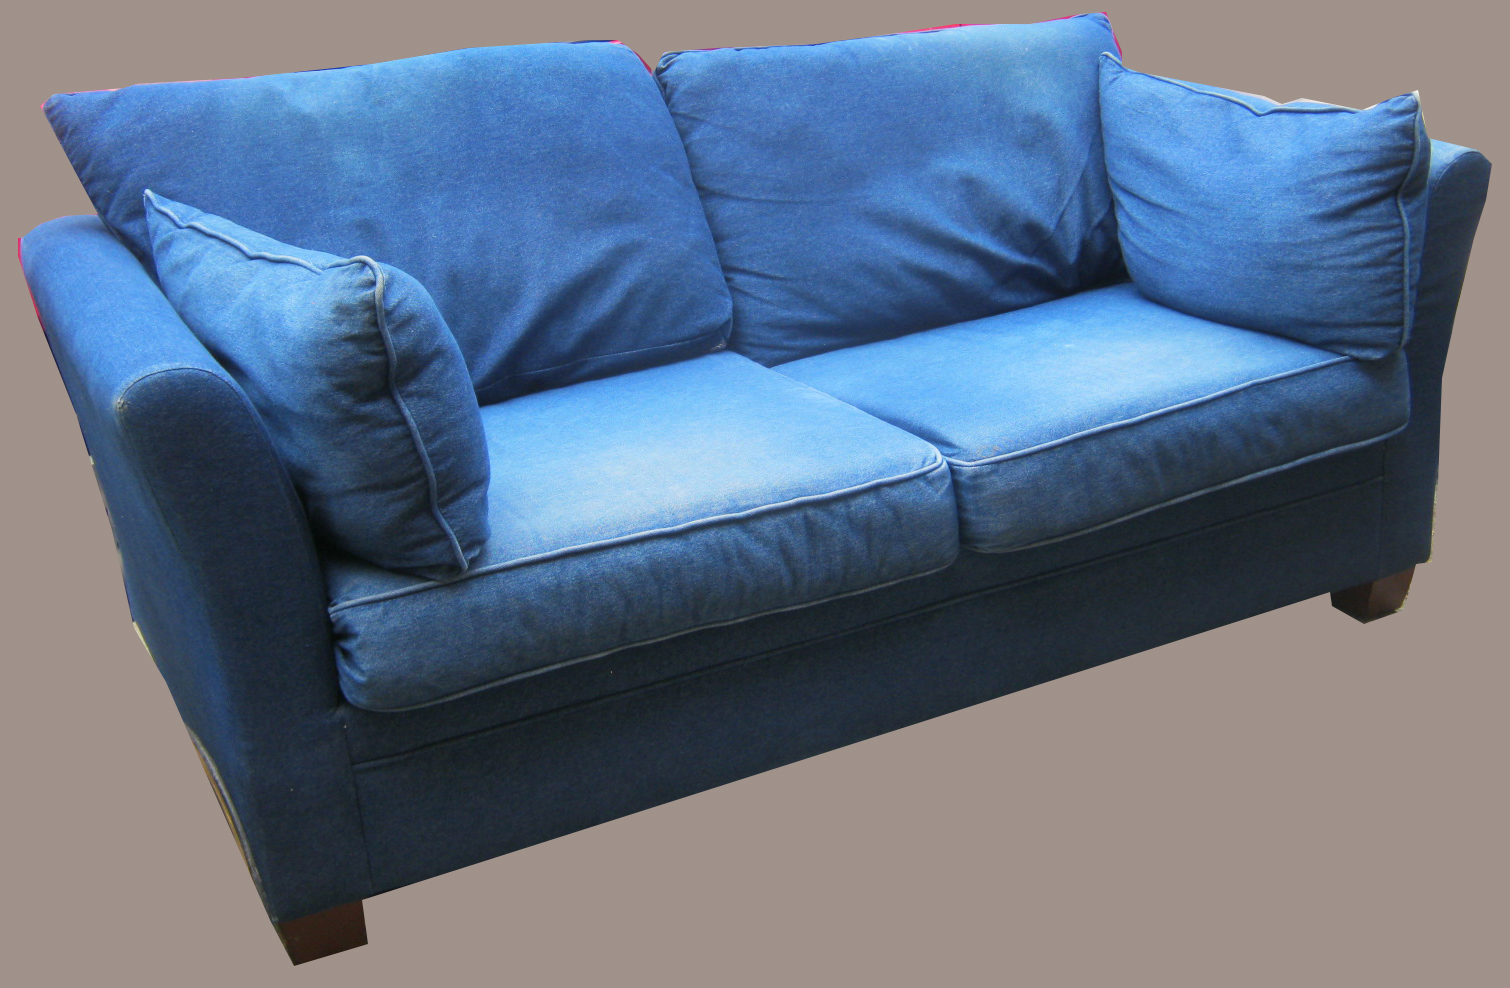 Uhuru furniture collectibles denim sofa sold Denim loveseat